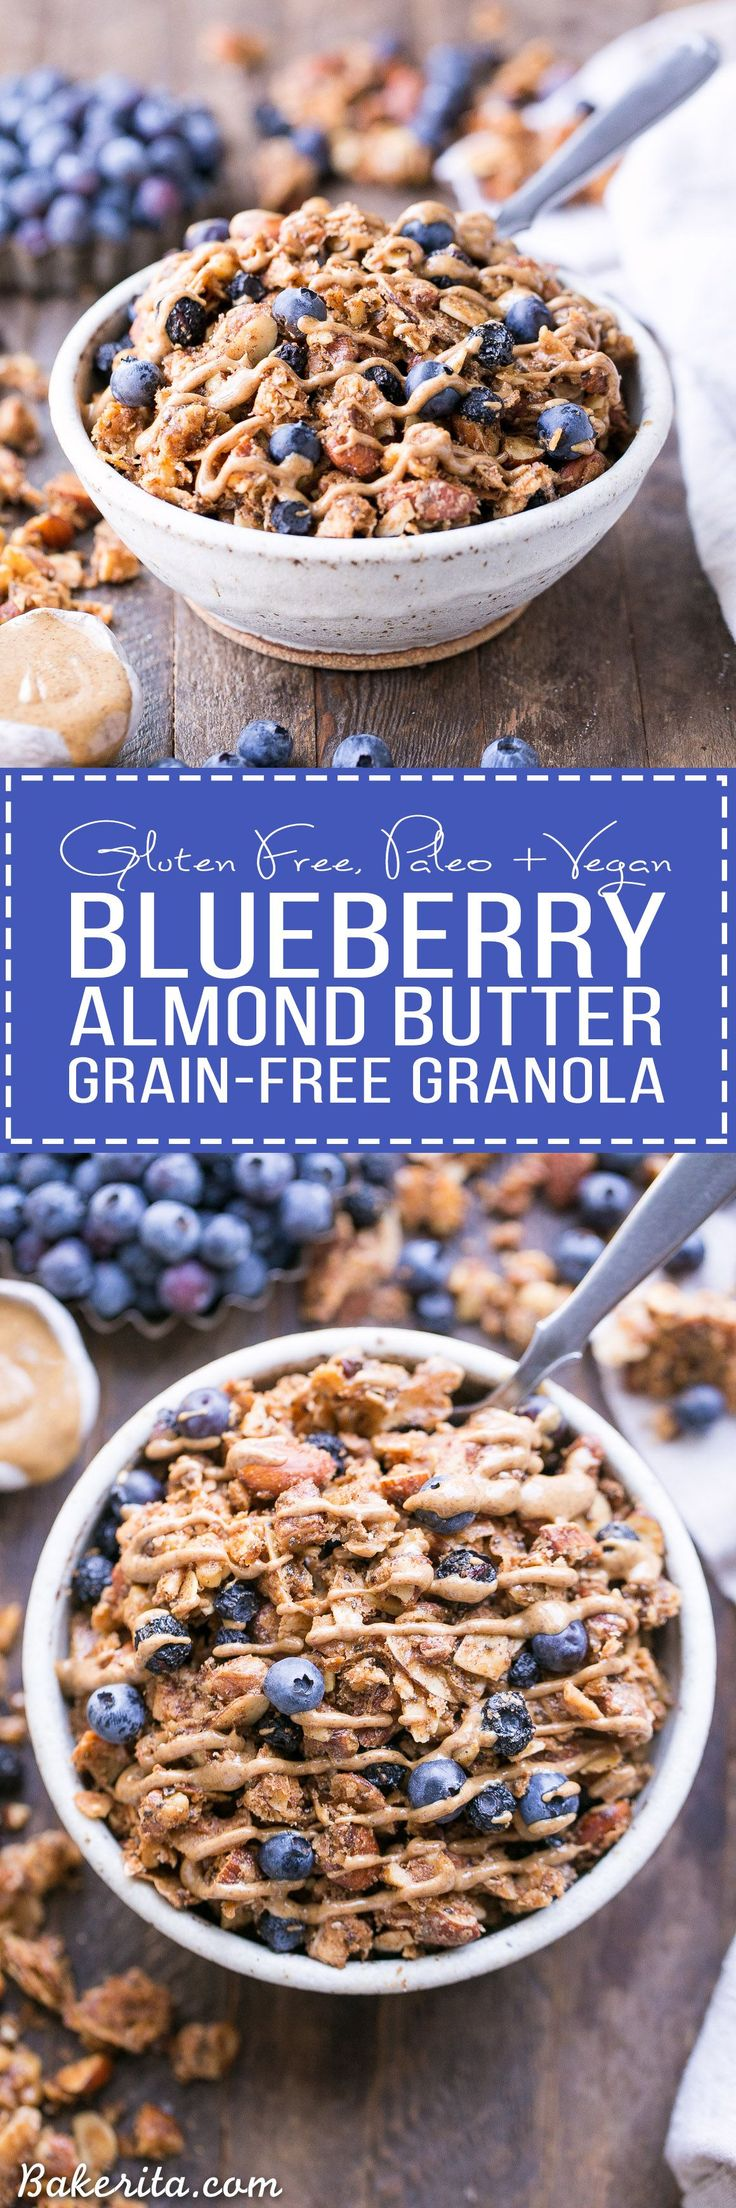 This Blueberry Almond Butter Grain-Free Granola is an easy and satisfying gluten-free, vegan and paleo granola recipe that makes the perfect breakfast or snack. It's made with simple, wholesome ingredients and is loaded with filling nuts and healthy fats to keep you satisfied.